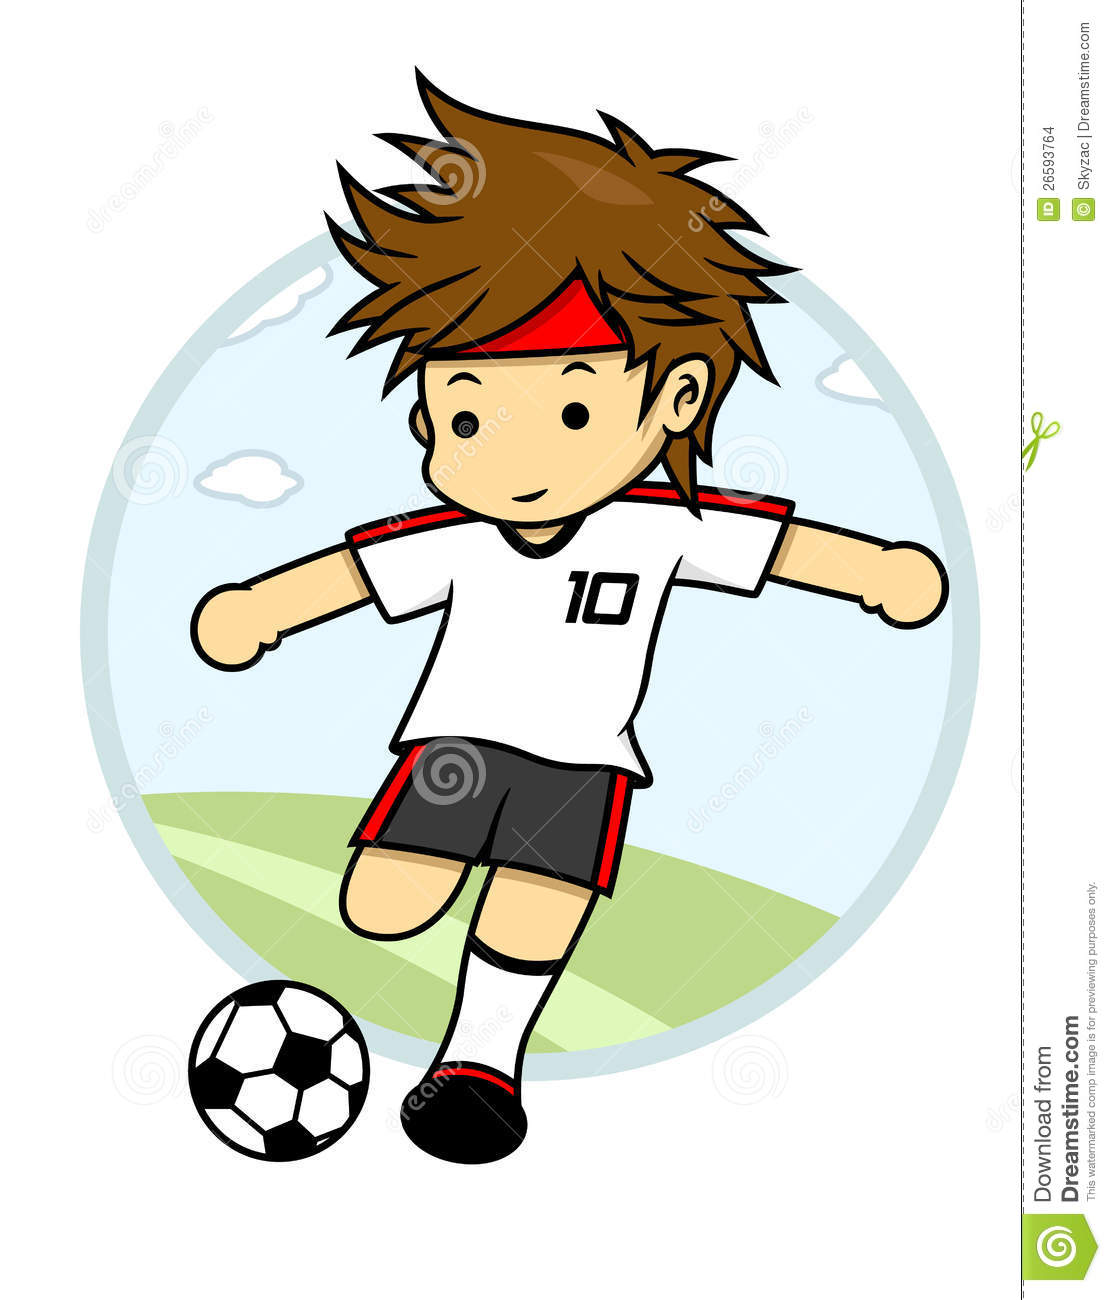 Number 10 Soccer Player Is Trying To Kick The Ball Stock Images ...